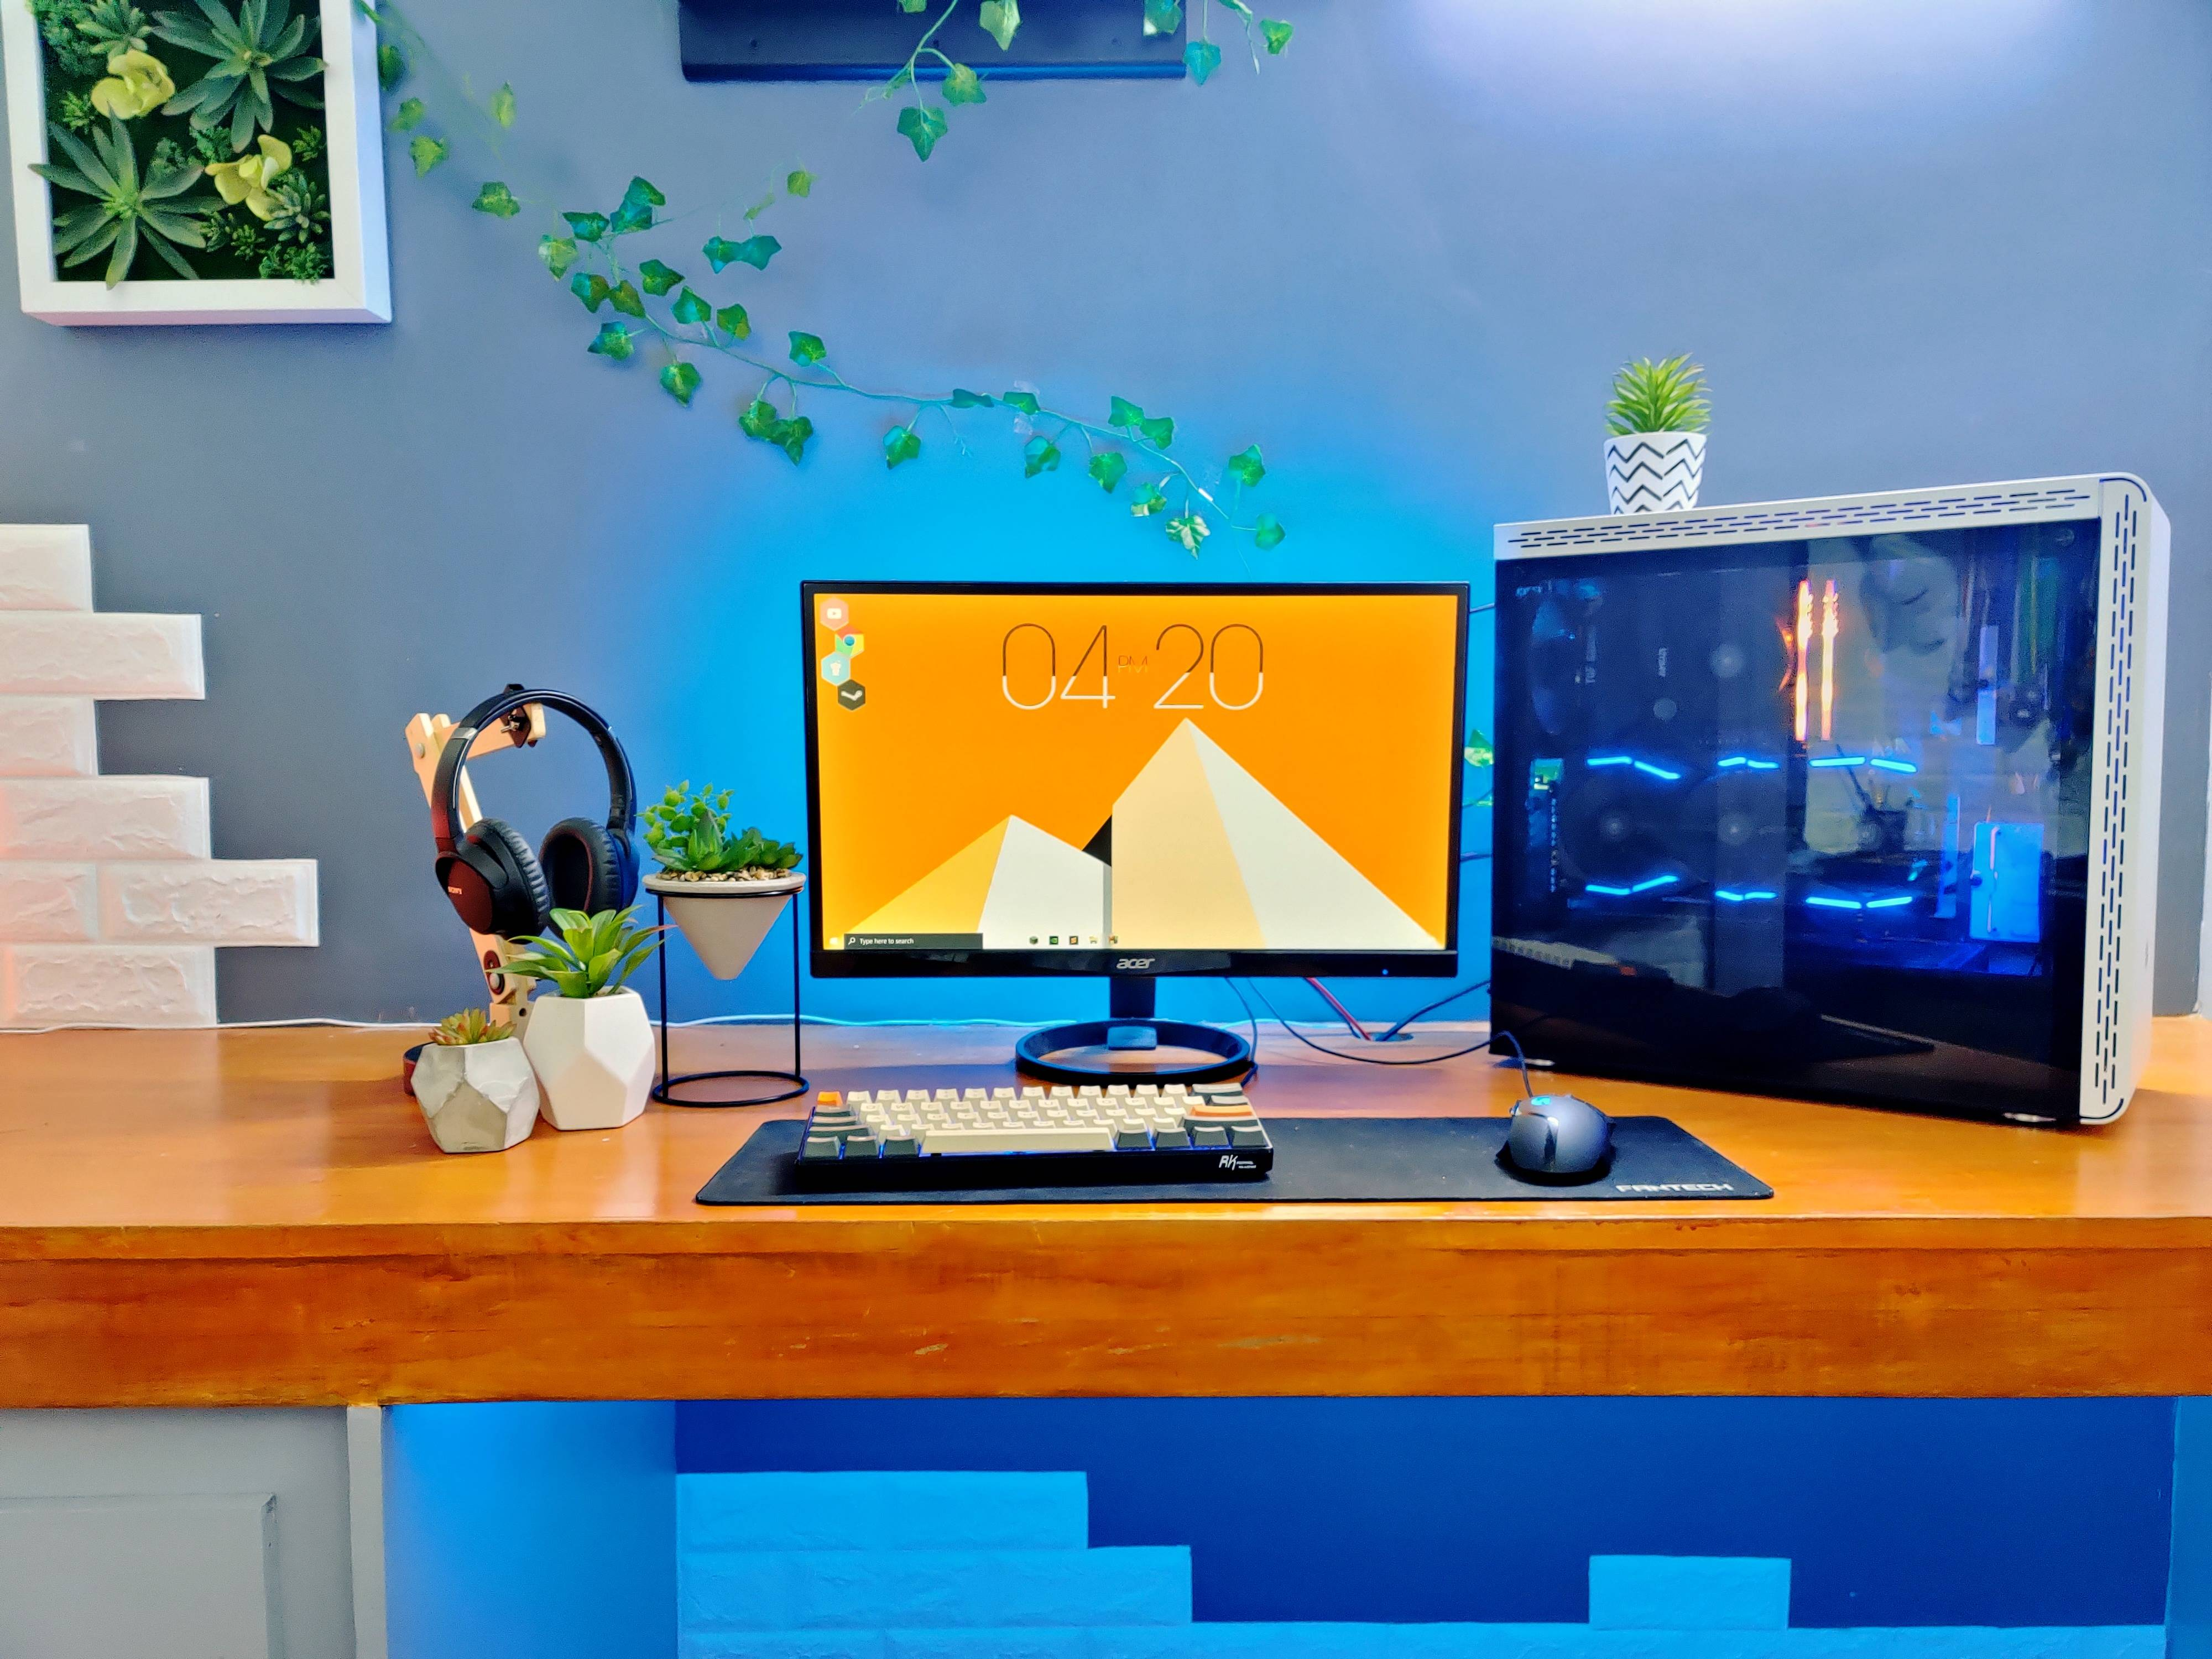 SteveNugget's Setup - School and Gaming Setup | Scooget